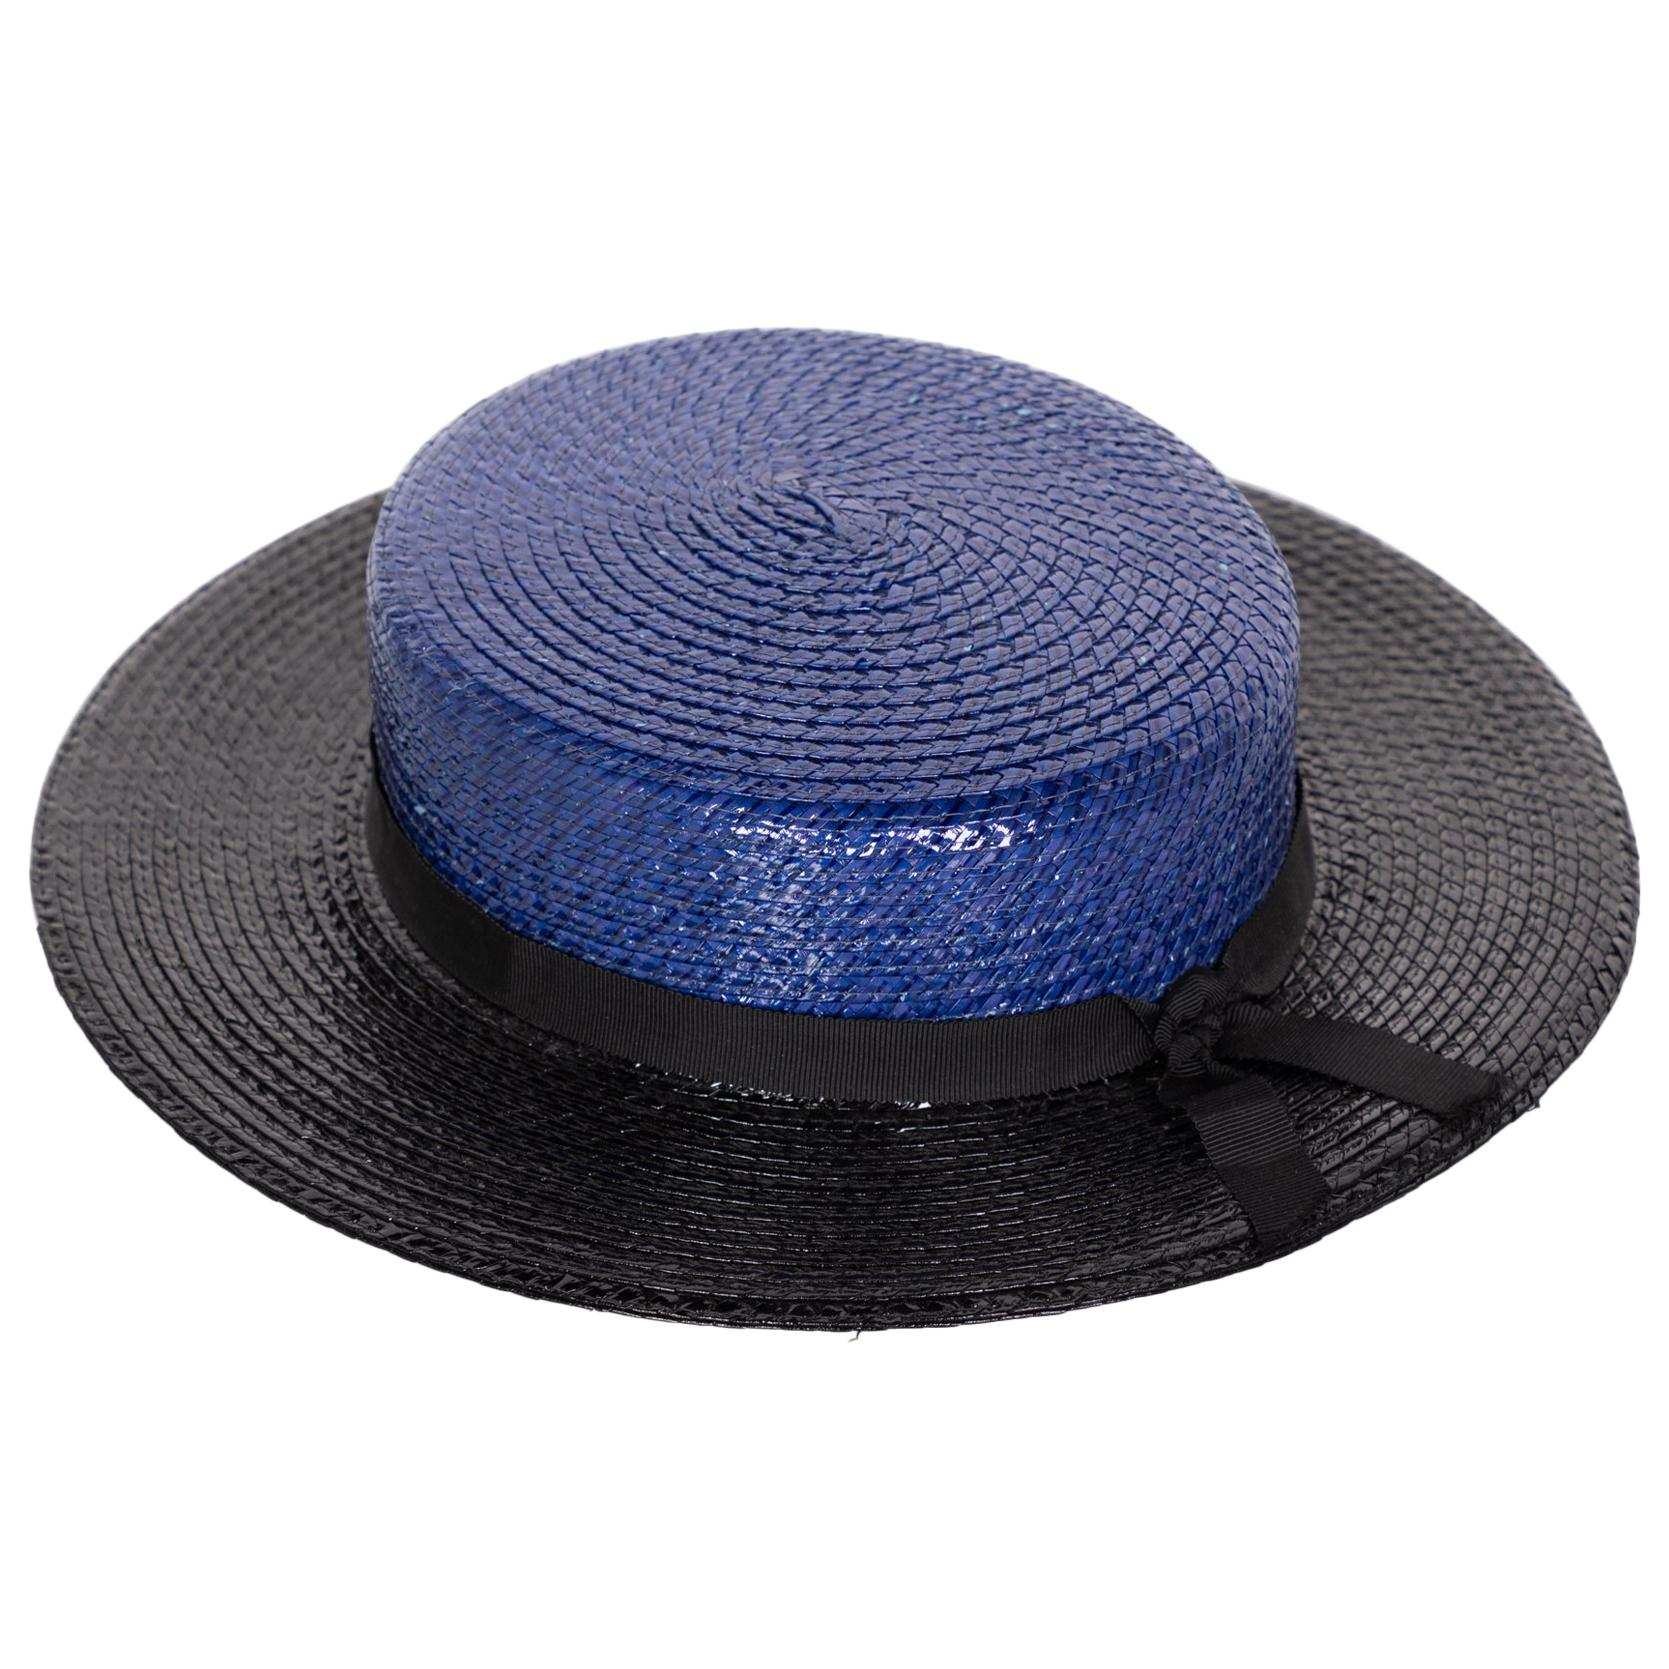 Yves Saint Laurent YSL Vintage Glossy Blue and Black Straw Hat, 1990s